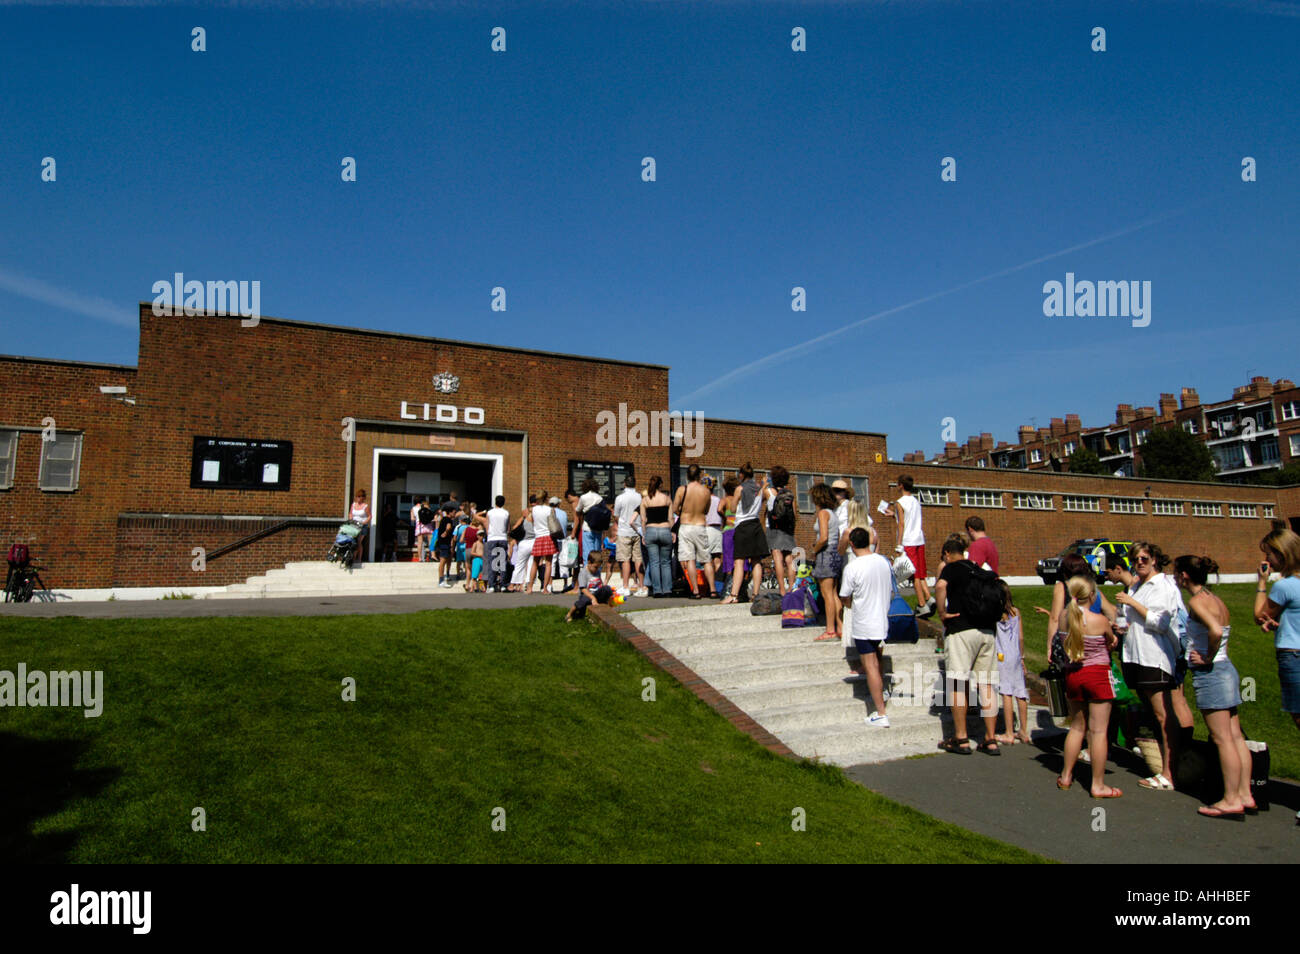 Queue To Enter The Parliament Hill Lido Outdoor Swimming Pool Stock Photo Royalty Free Image